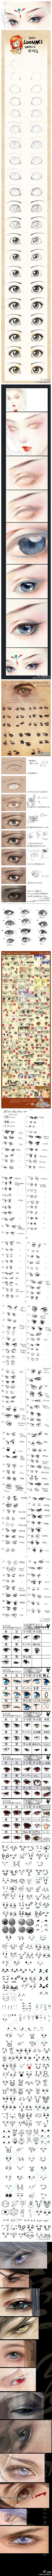 How to Draw Eyes- I am not an artist, but this is great for kids with sketching ability. by roxycrafts